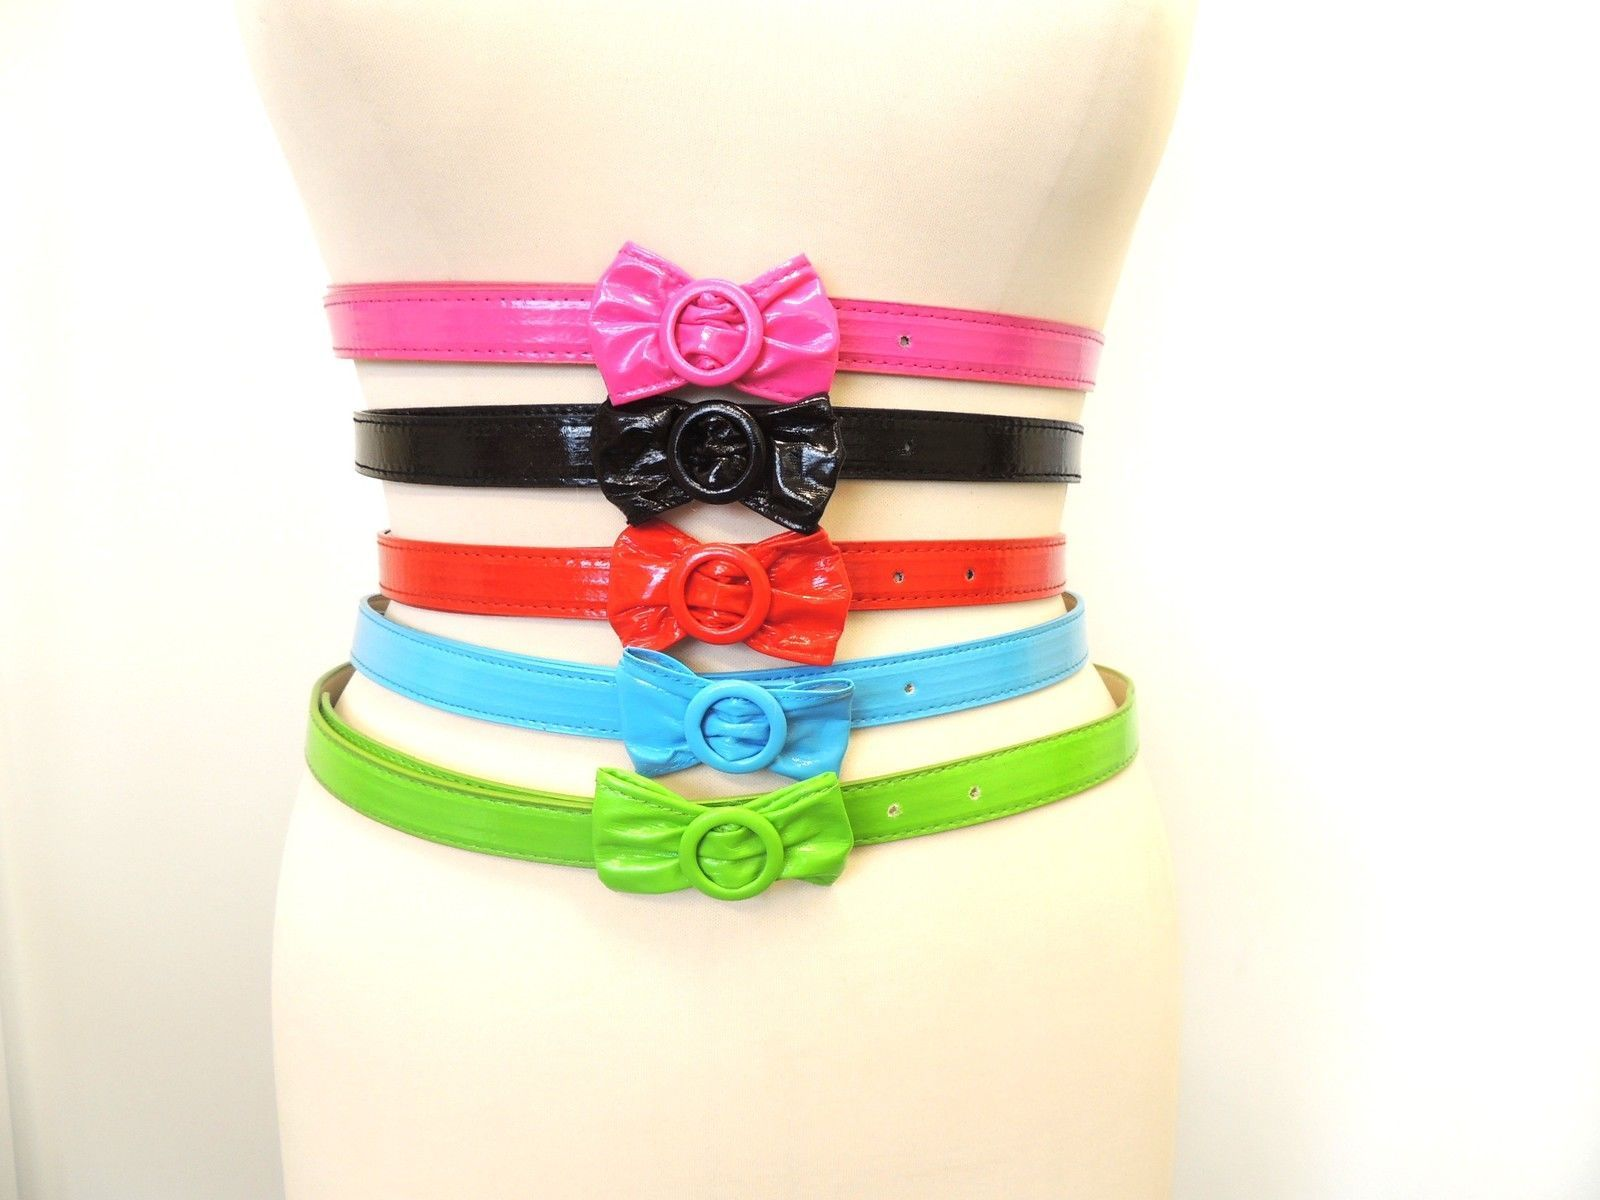 New-Ladies-Vintage-1950-039-s-style-Pin-up-thin-skinny-belt-with-Bow